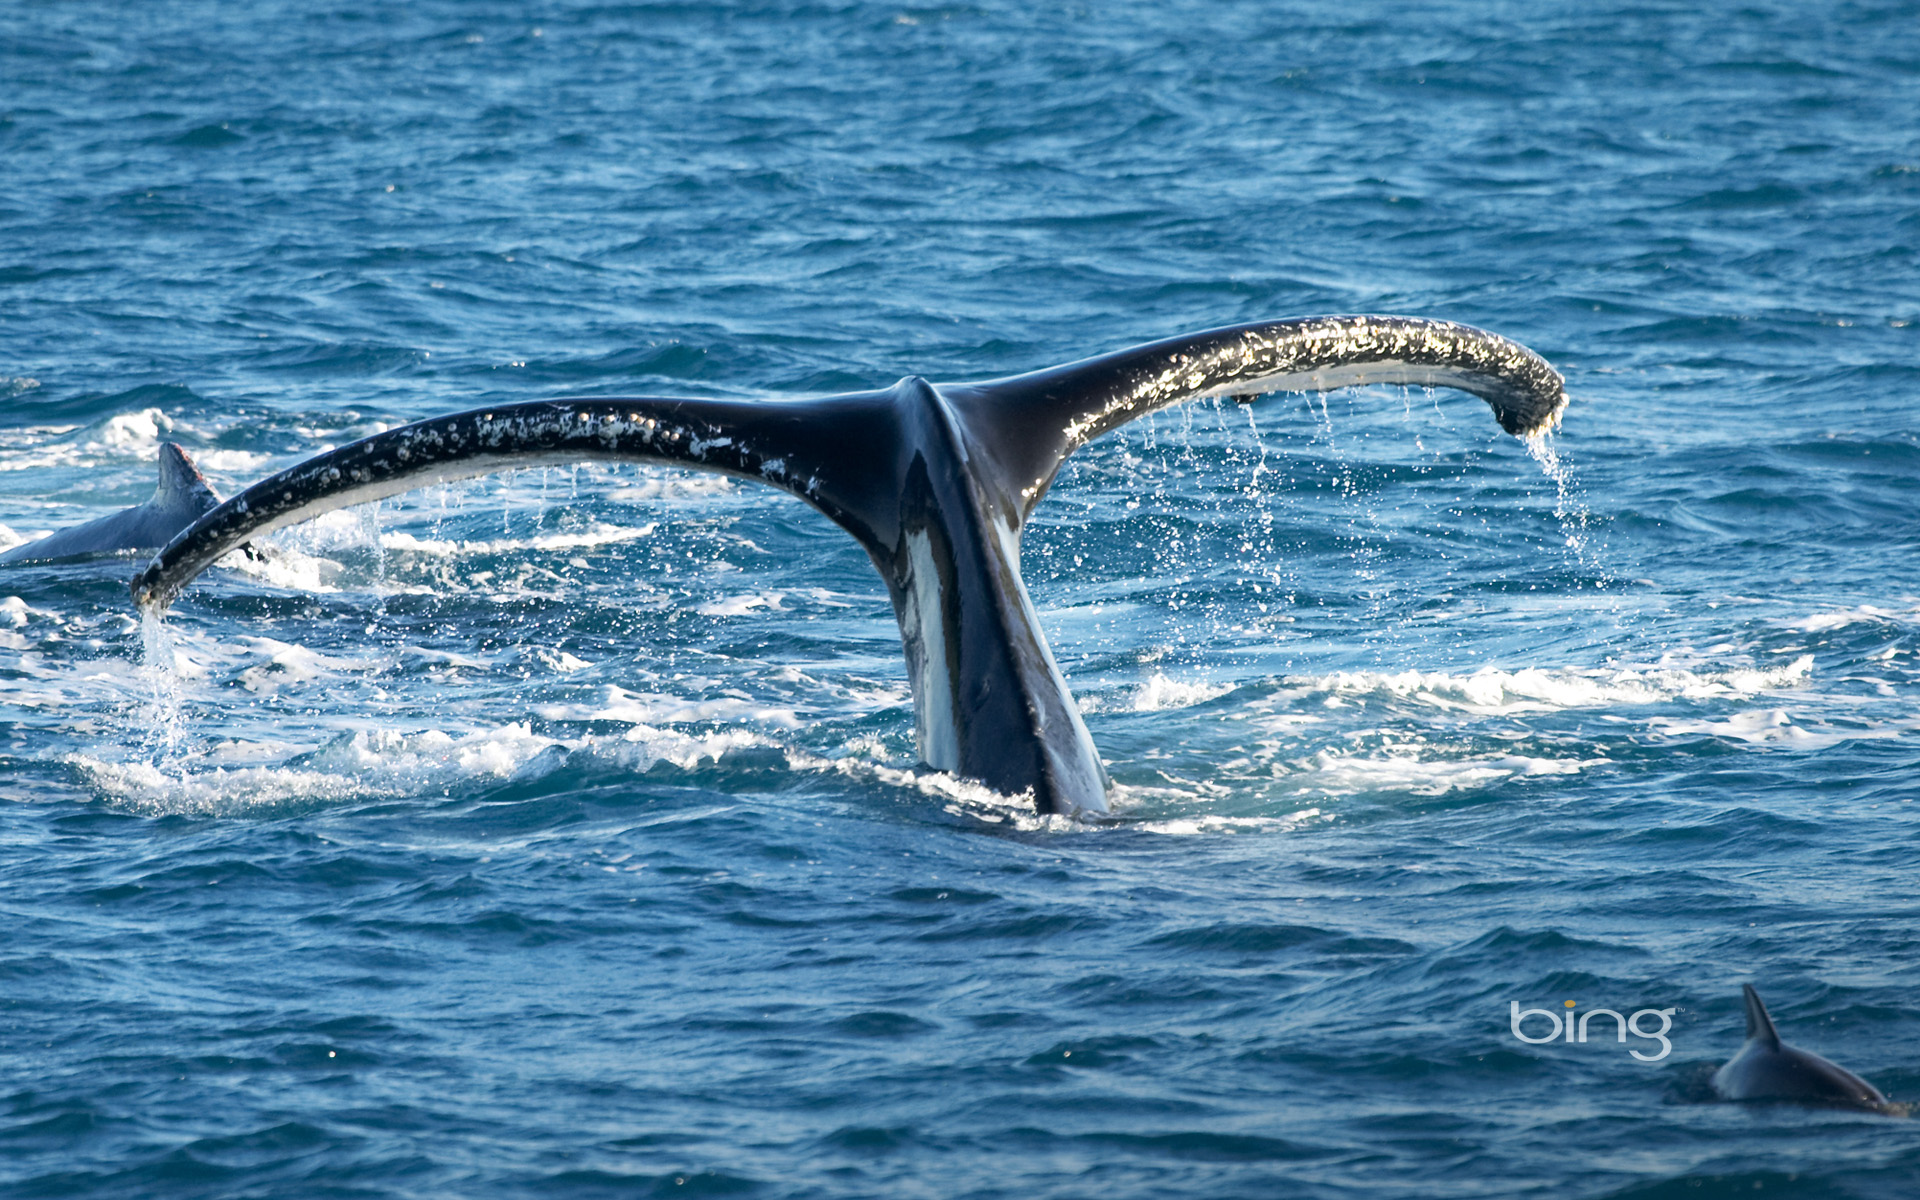 of Humpback Whale Hervey Bay Queensland Australia HQ Wallpapers 1920x1200